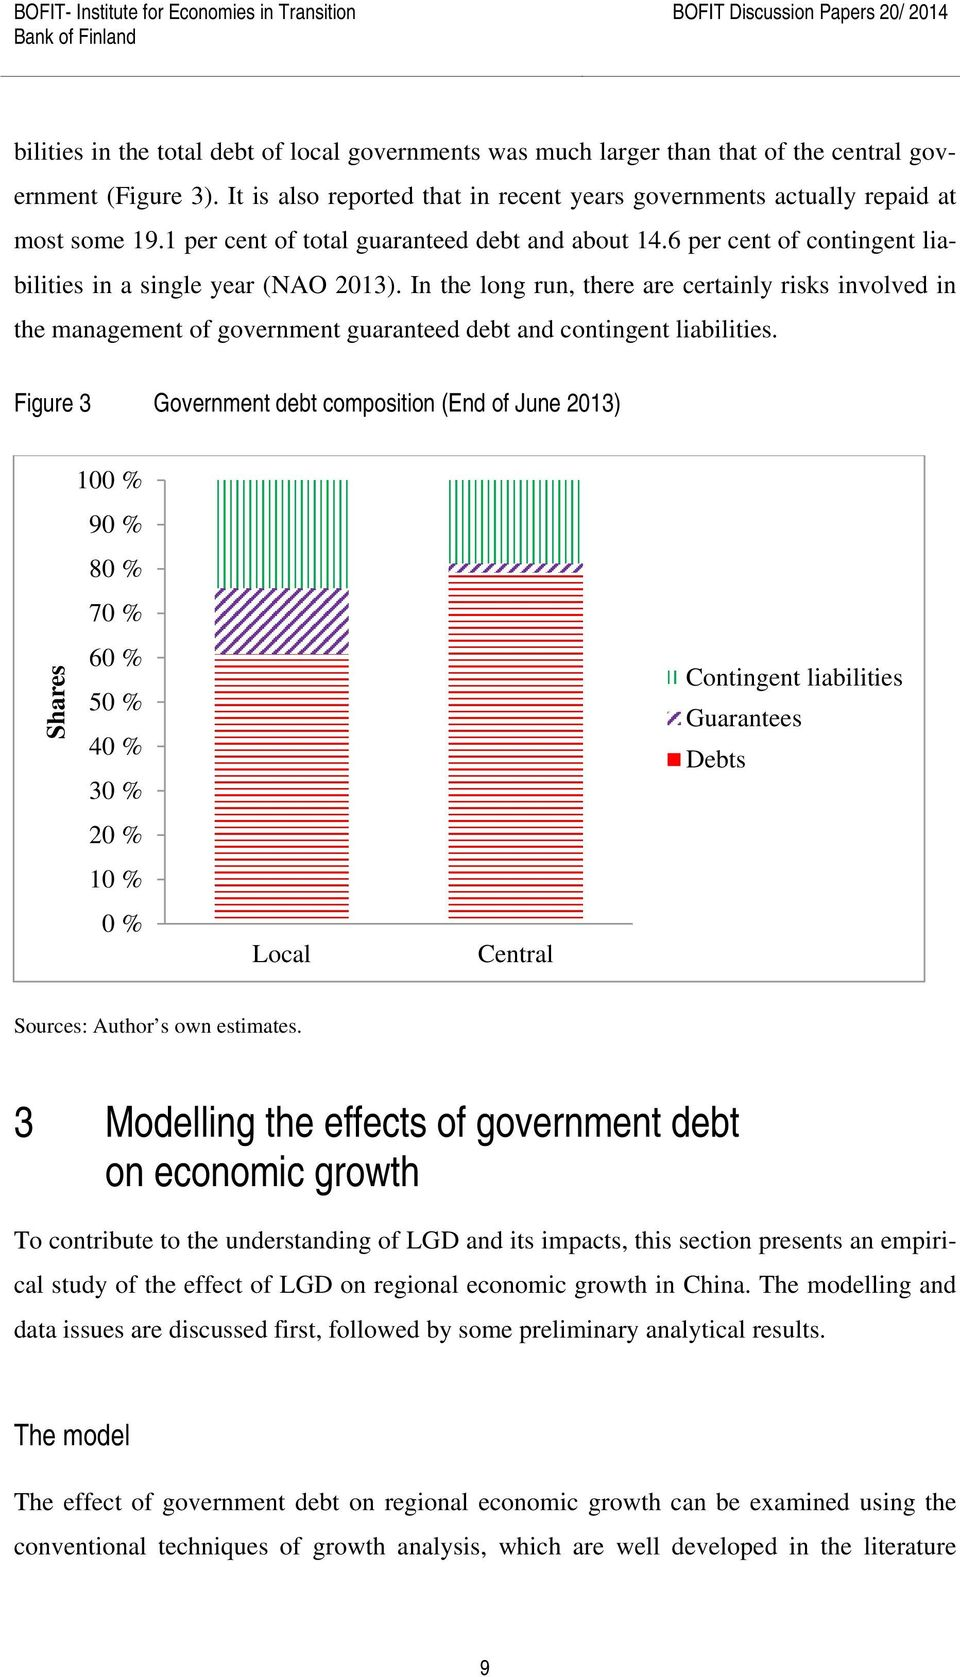 6 per cent of contingent liabilities in a single year (NAO 2013). In the long run, there are certainly risks involved in the management of government guaranteed debt and contingent liabilities.